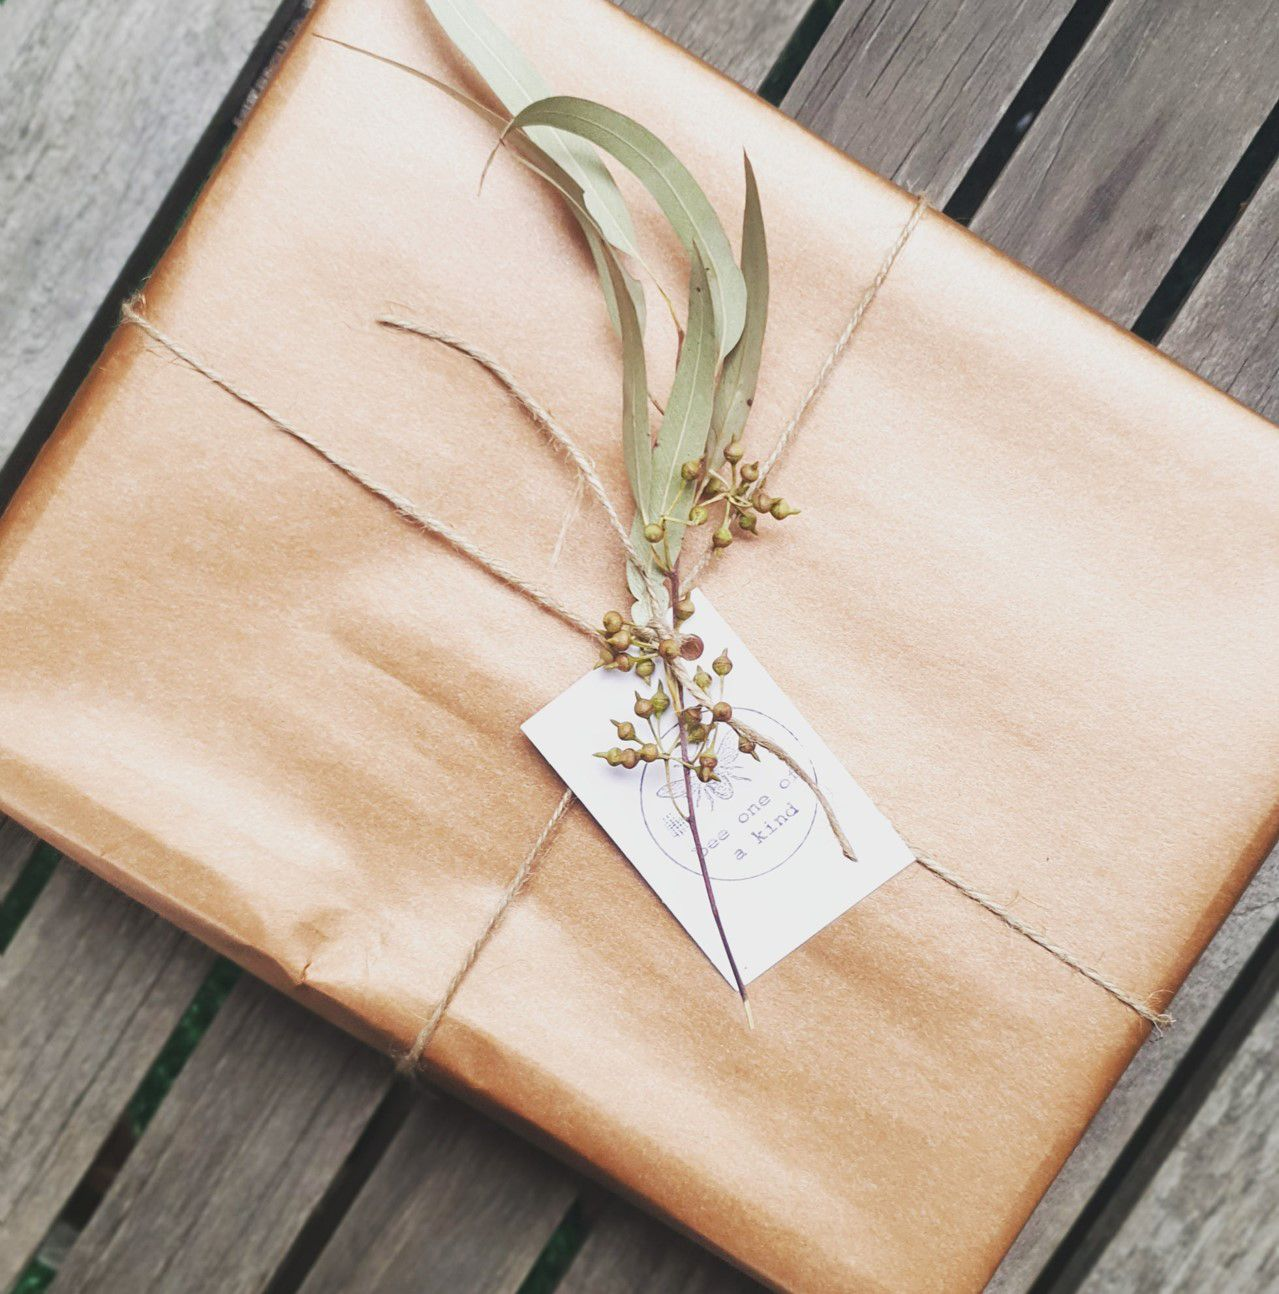 Bee one of a kind natural skincare products, beautifully wrapped in sustainable brown paper and string with a touch of nature'